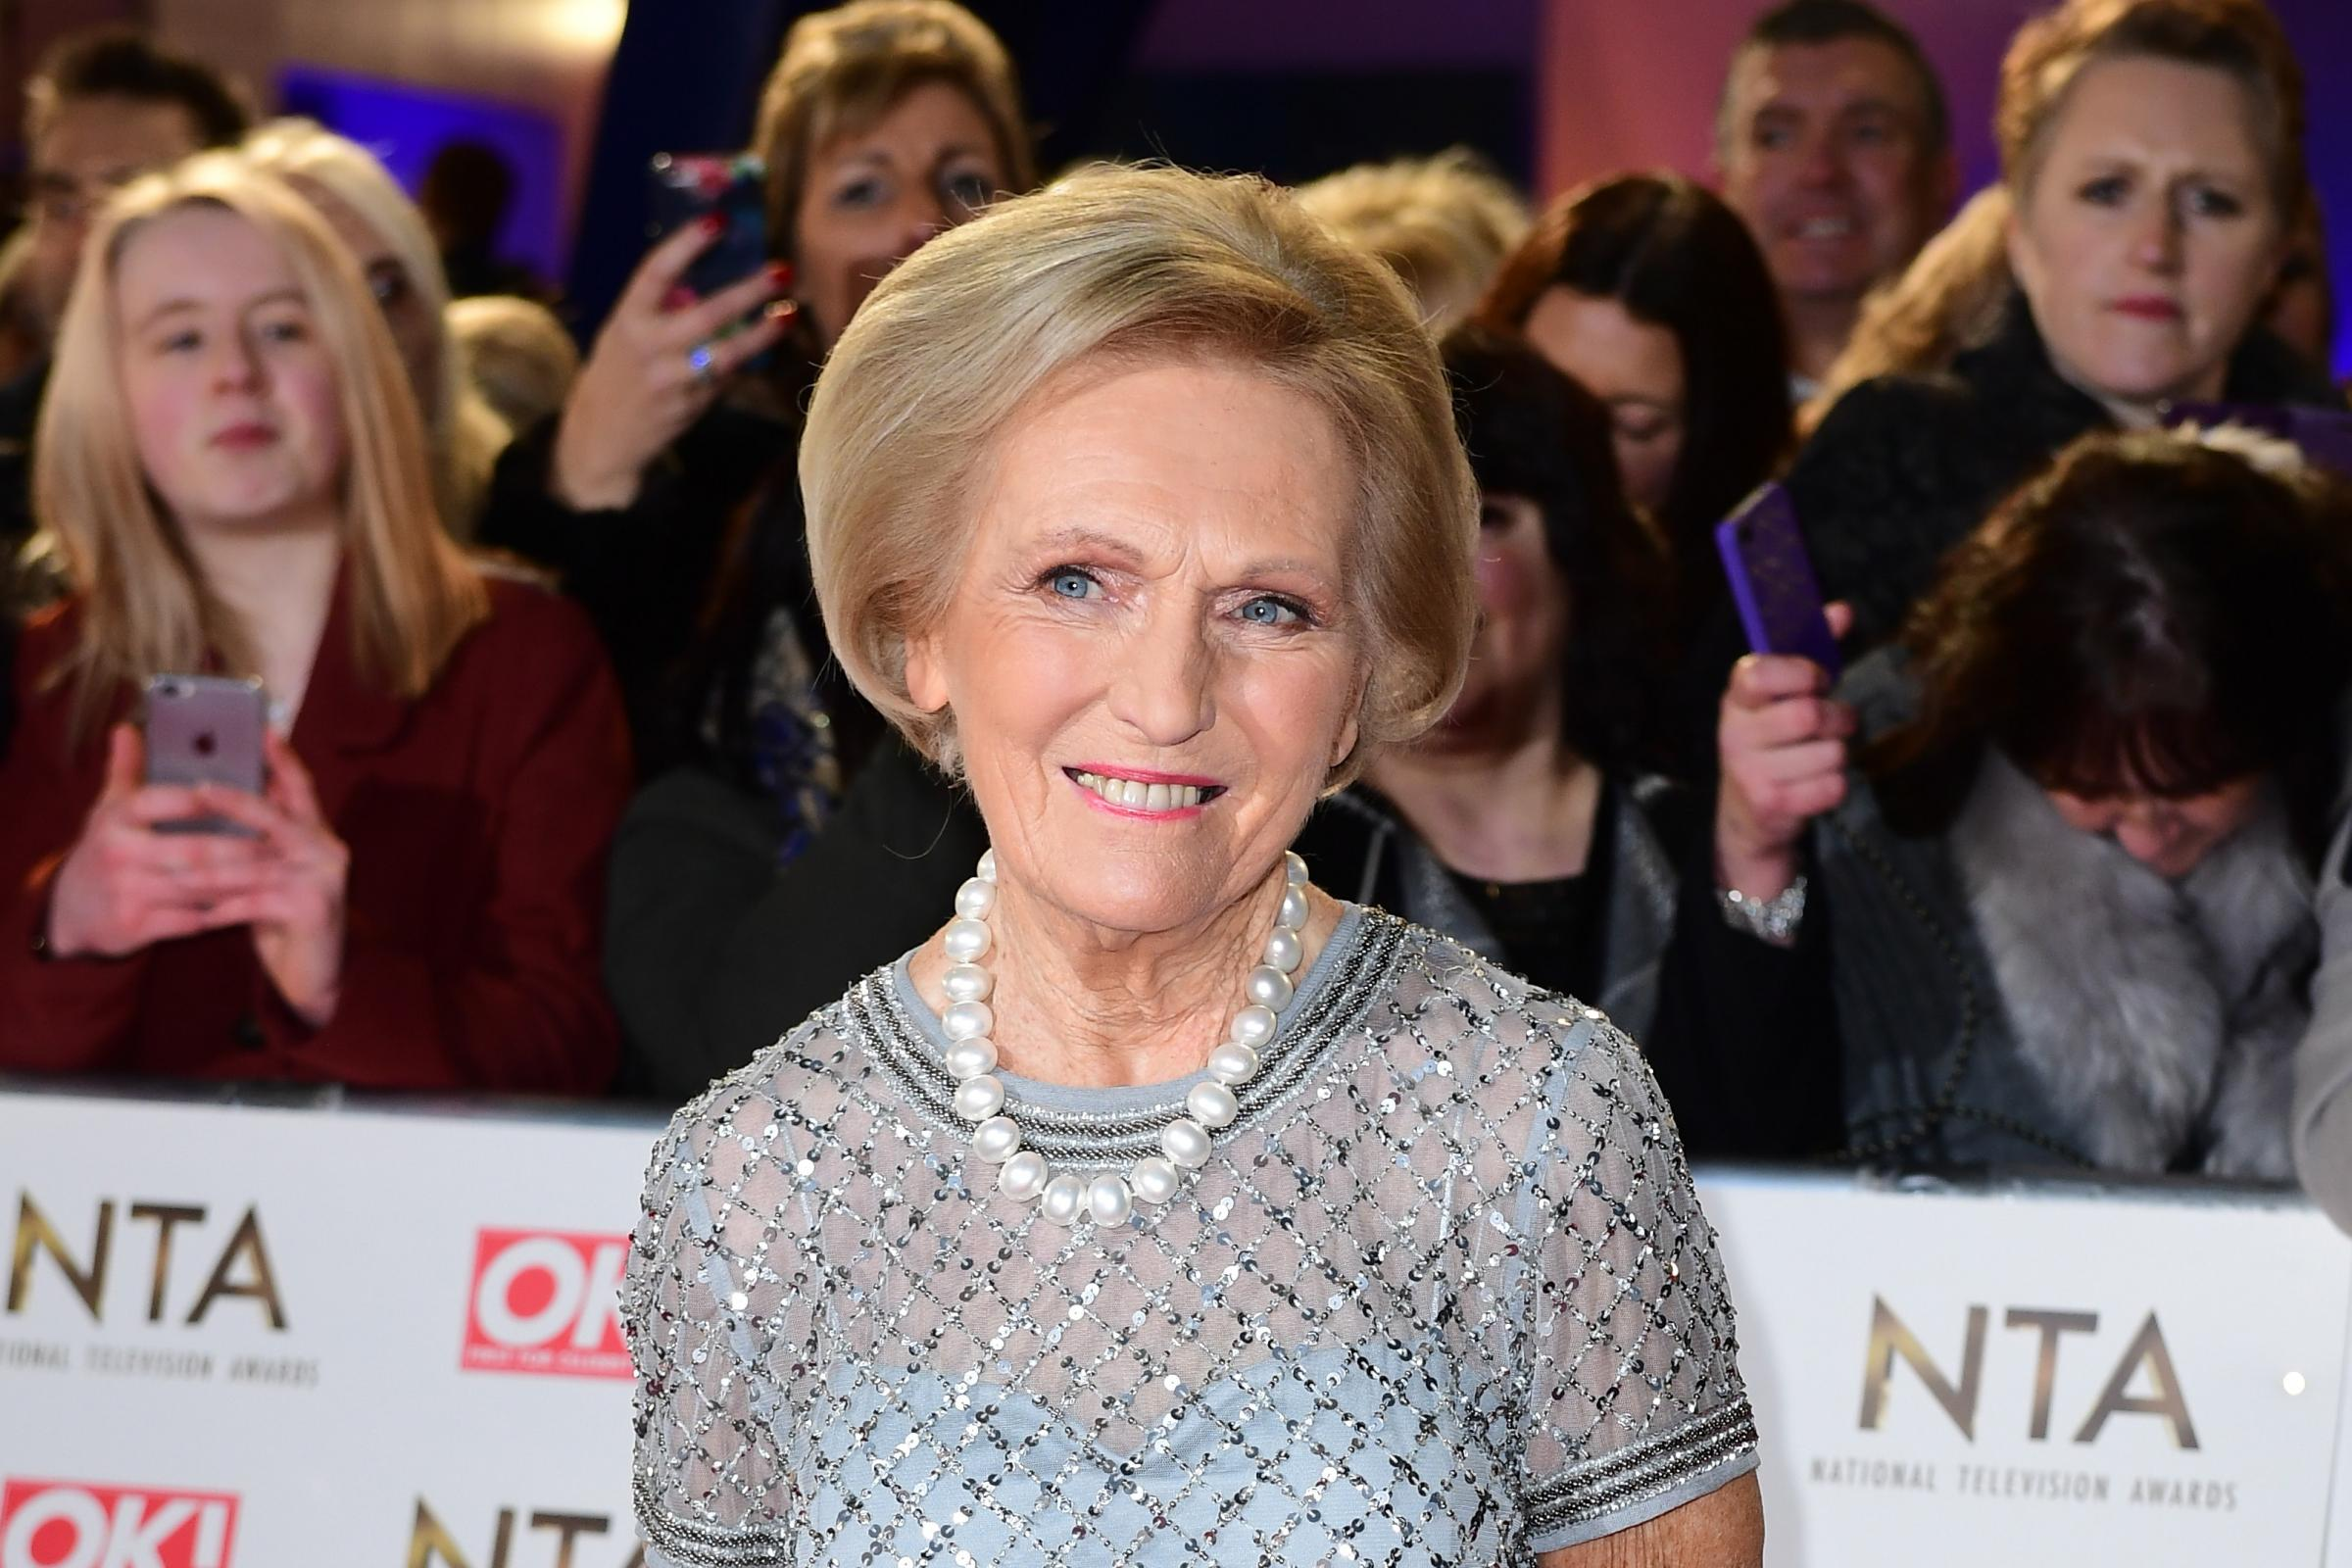 Mary Berry at an awards show